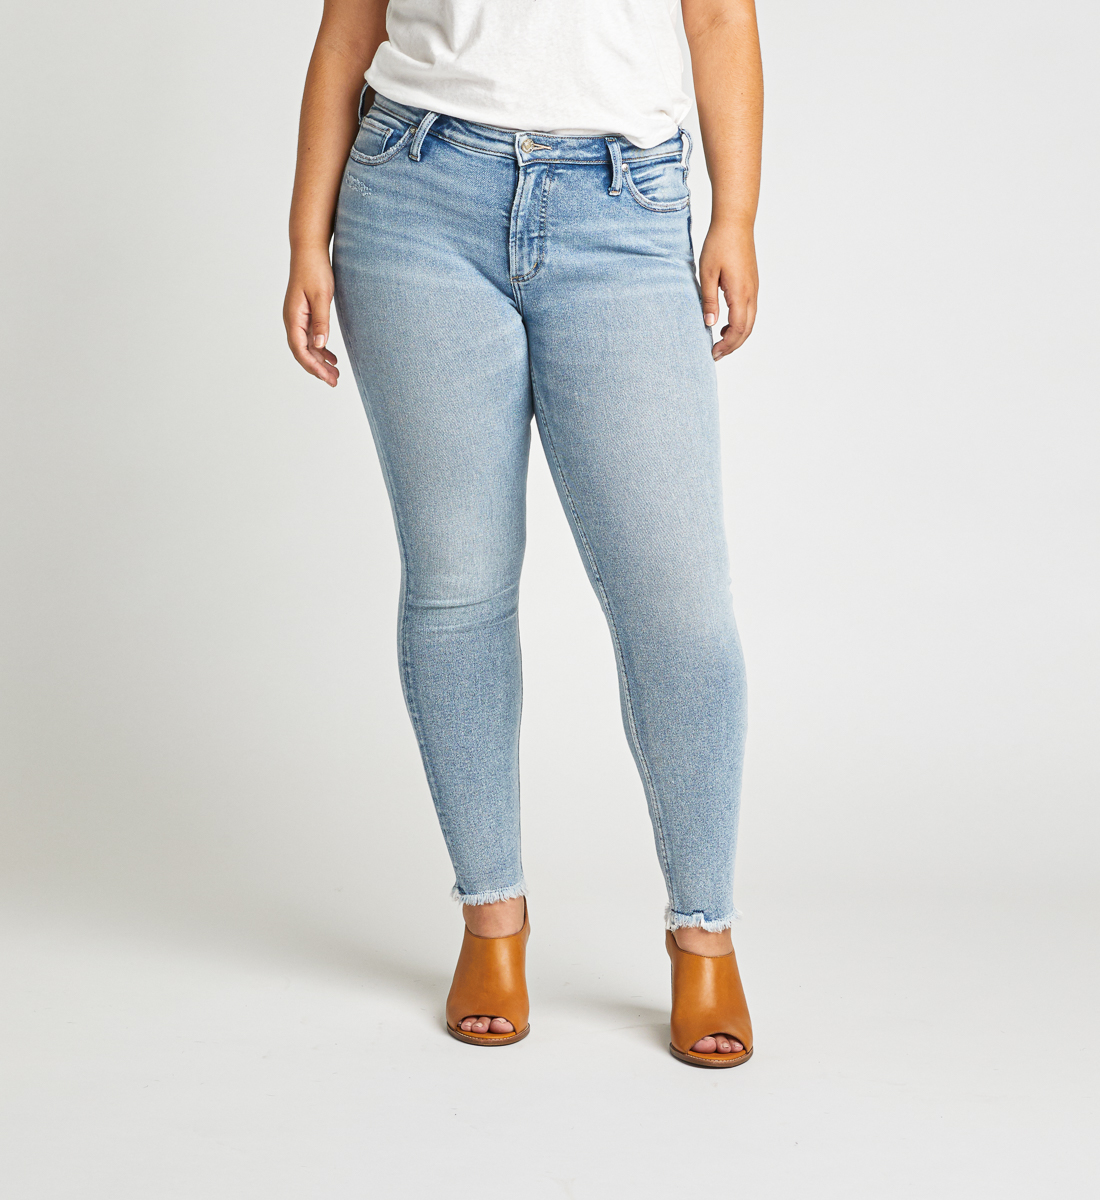 Most Wanted Mid Rise Skinny Jeans Plus Size Front